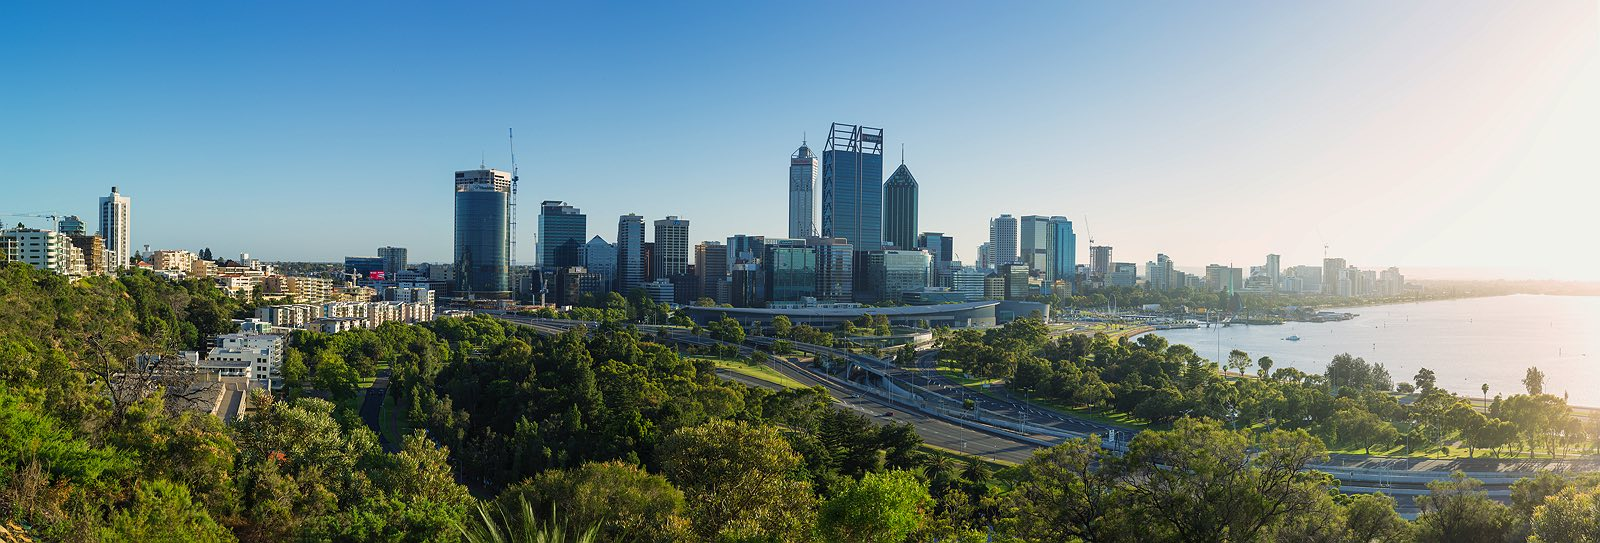 perth-cityscape-skyline-kings-park-dawn-2017